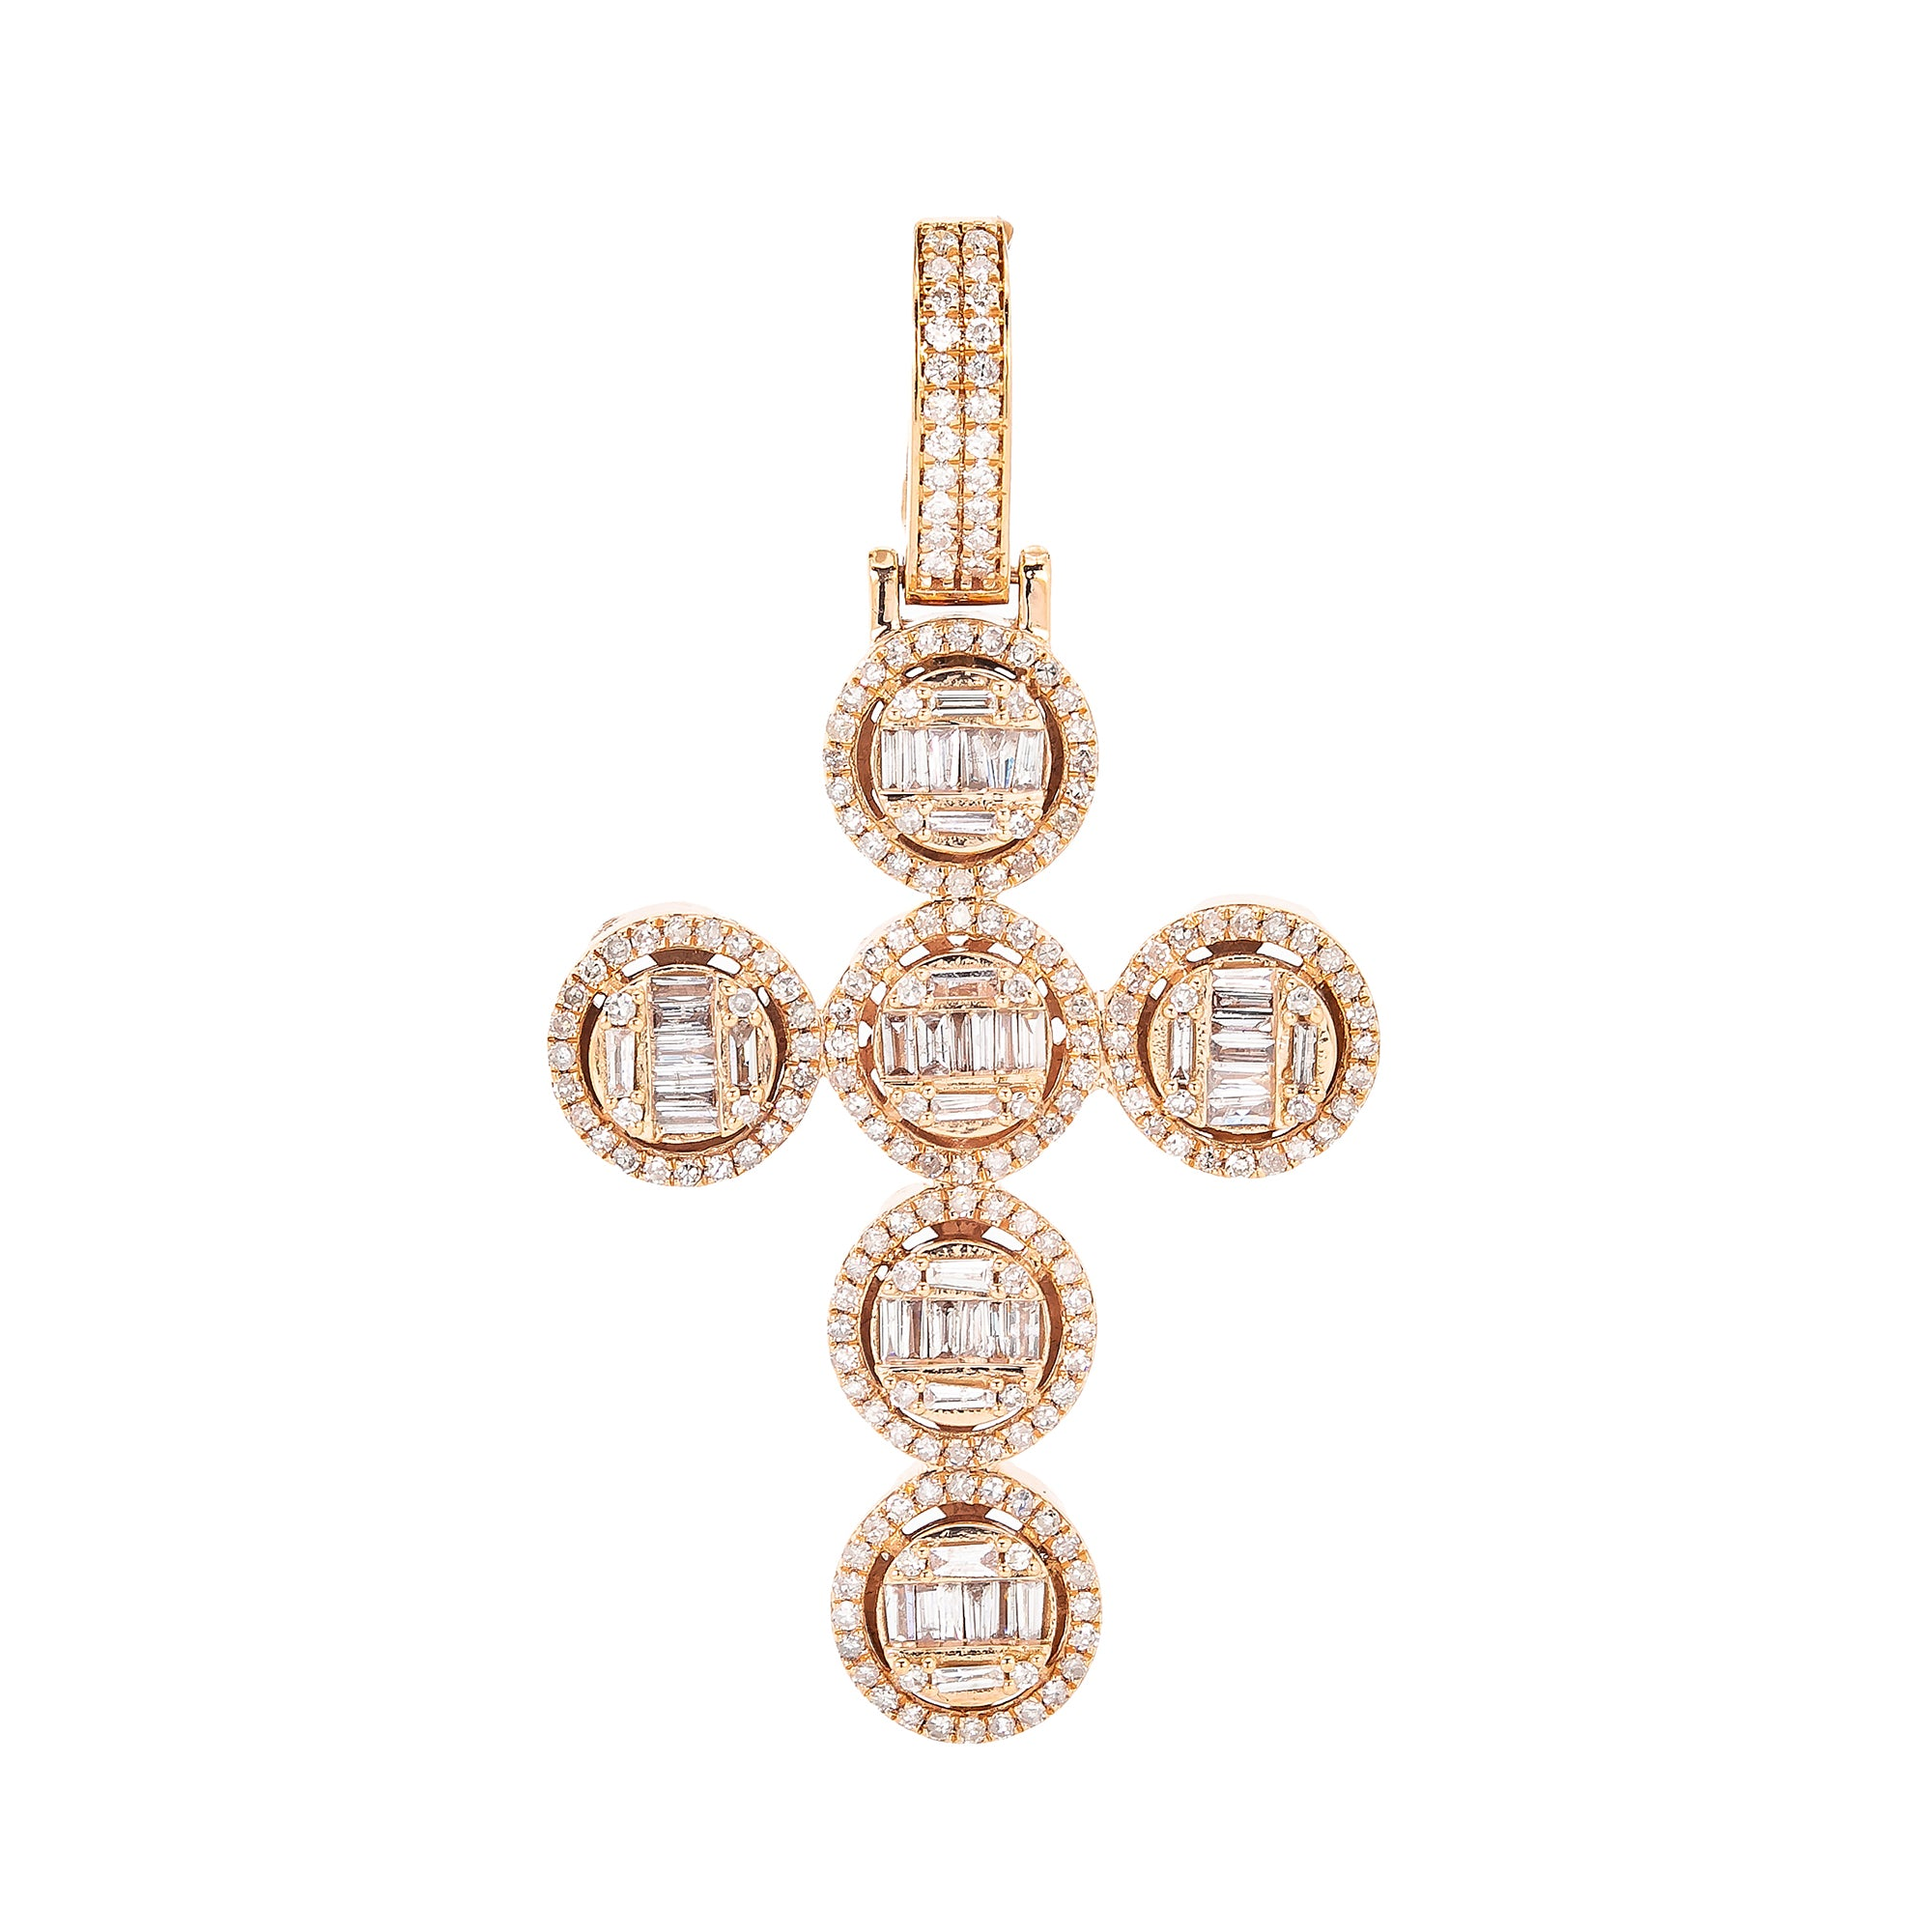 Unisex 14K Rose Gold Cross Pendant with 1.33 CT Diamonds